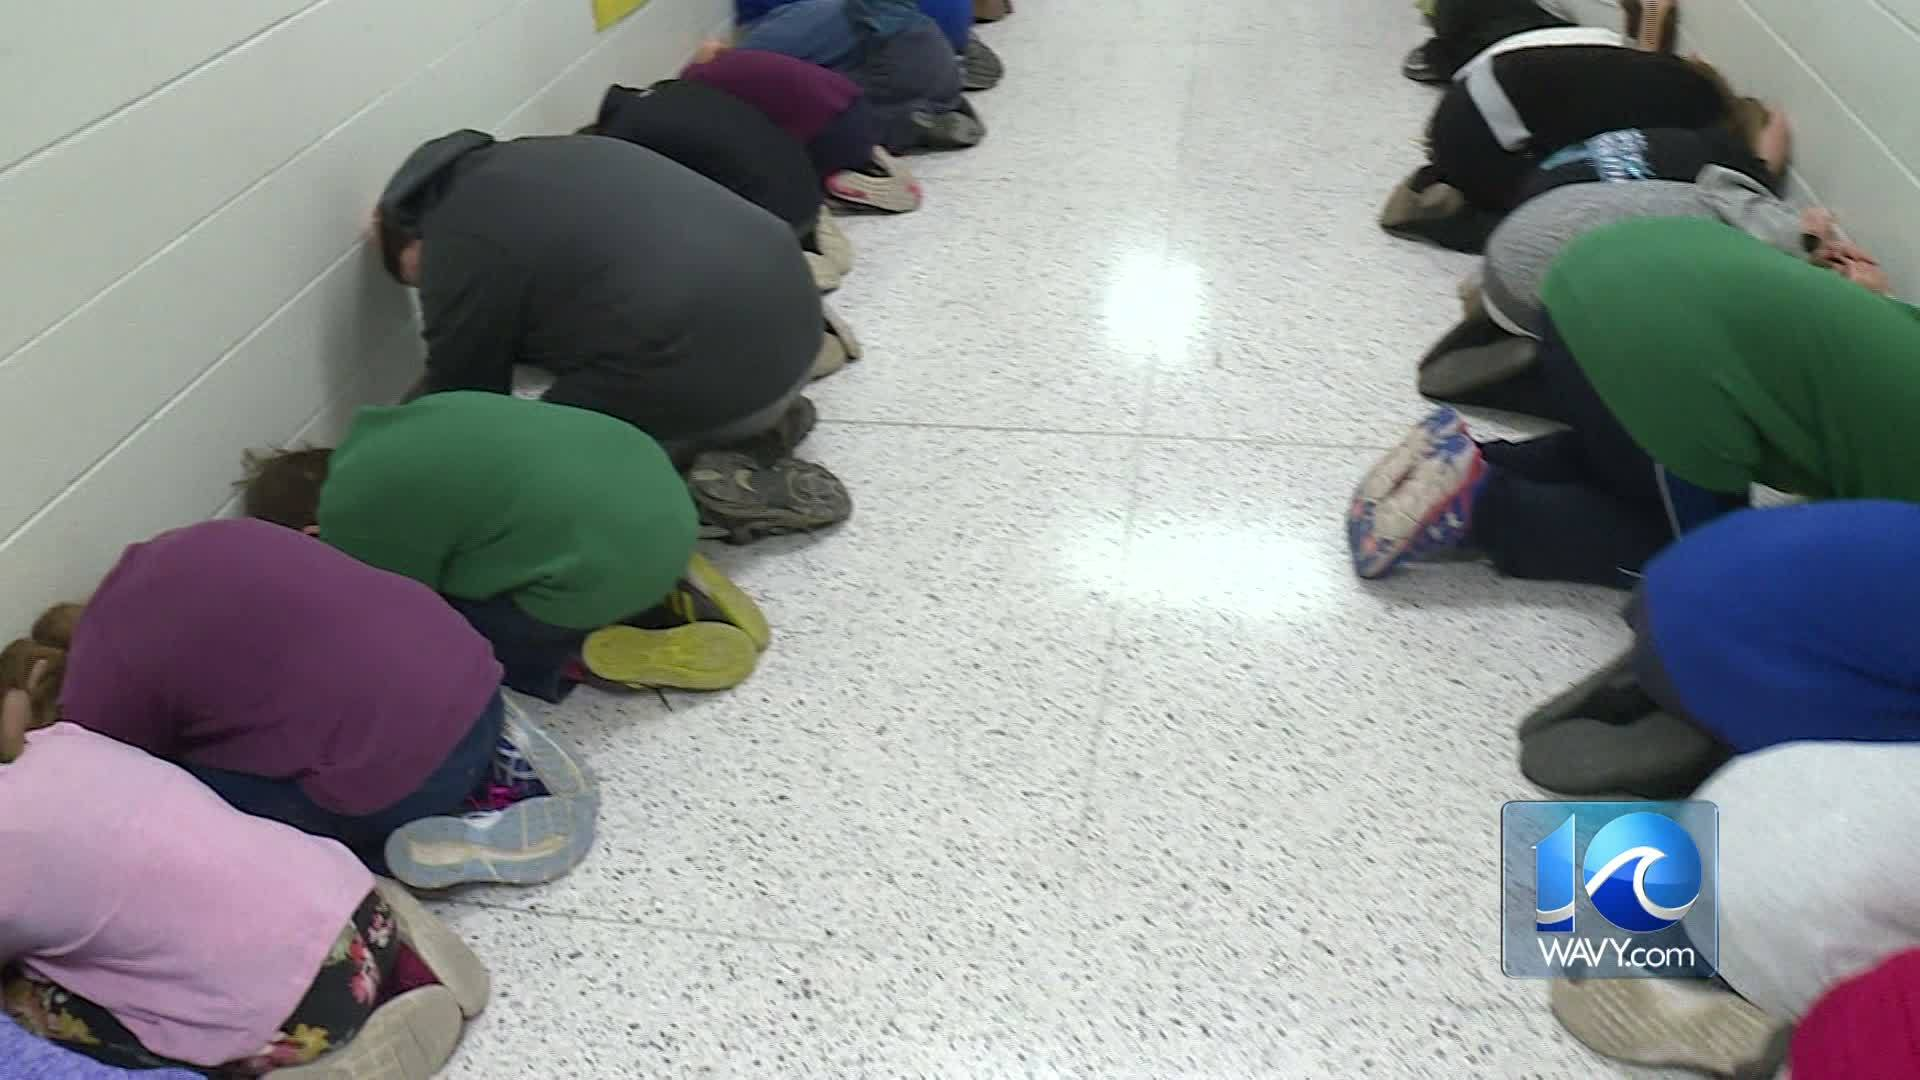 Virginia conducts annual statewide tornado drills